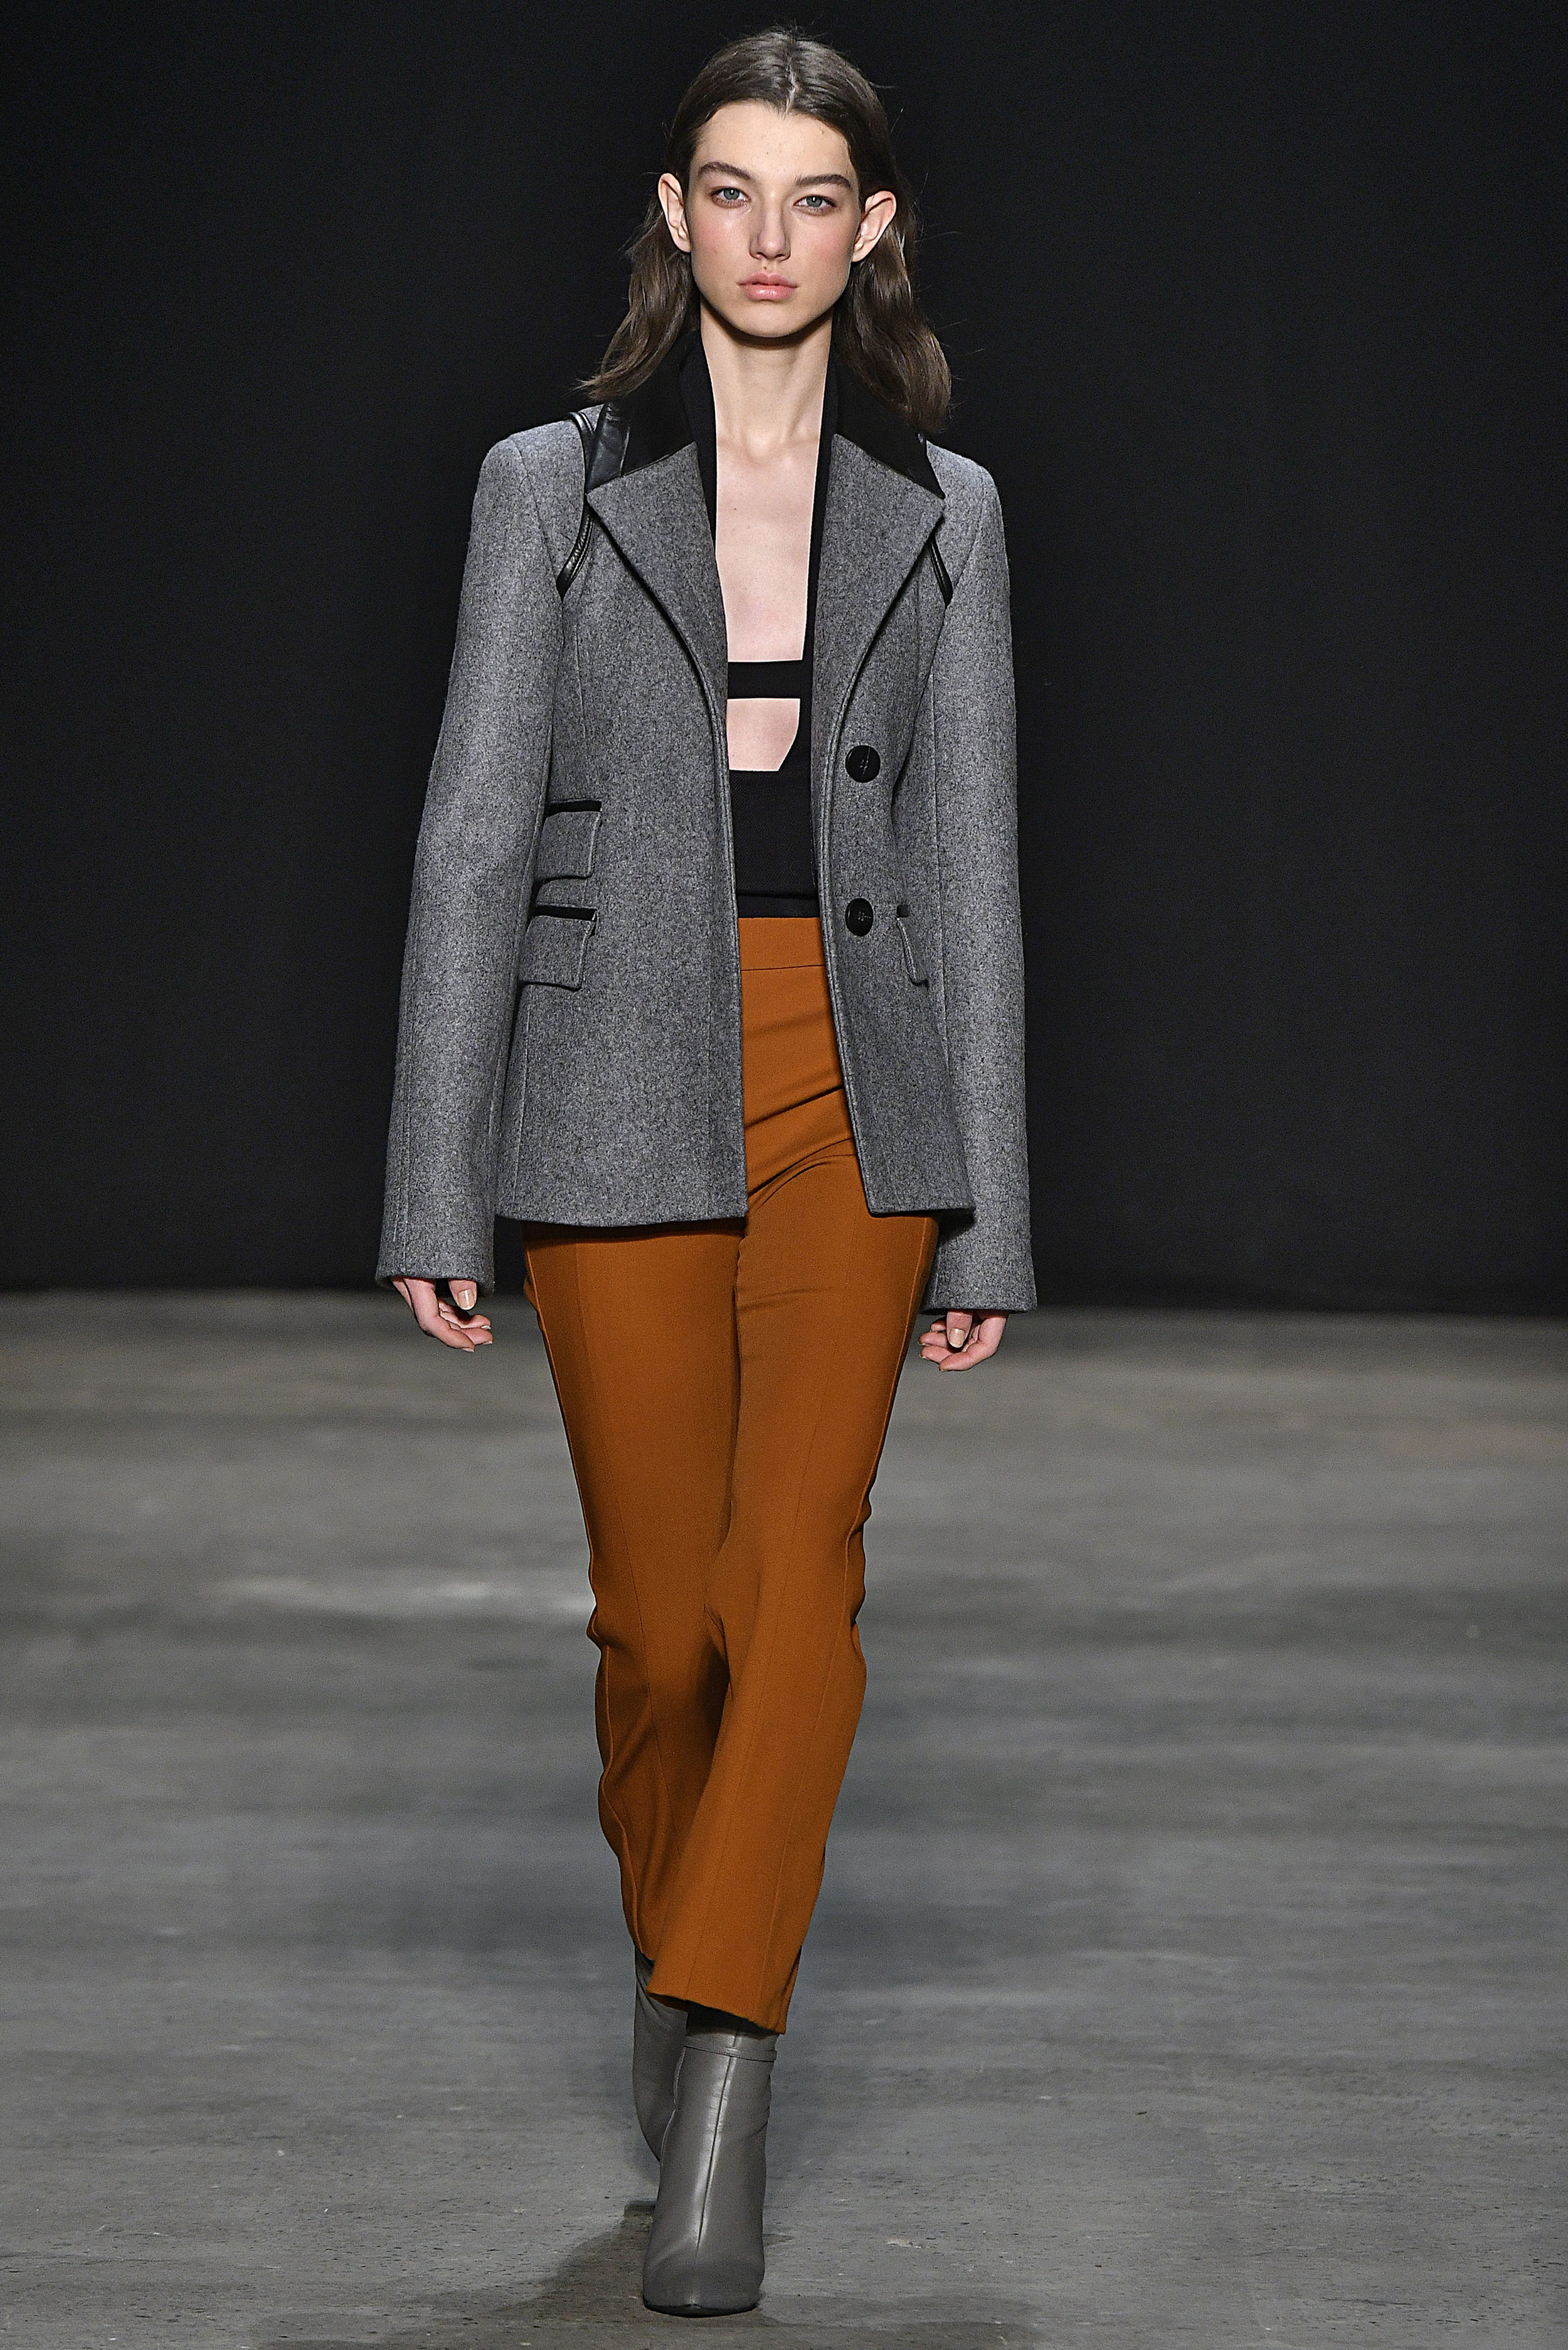 Narciso Rodriguez Fall 2017 collection. Grey melange pressed wool jacket over black double knit halter with copper wool gabardine pant.